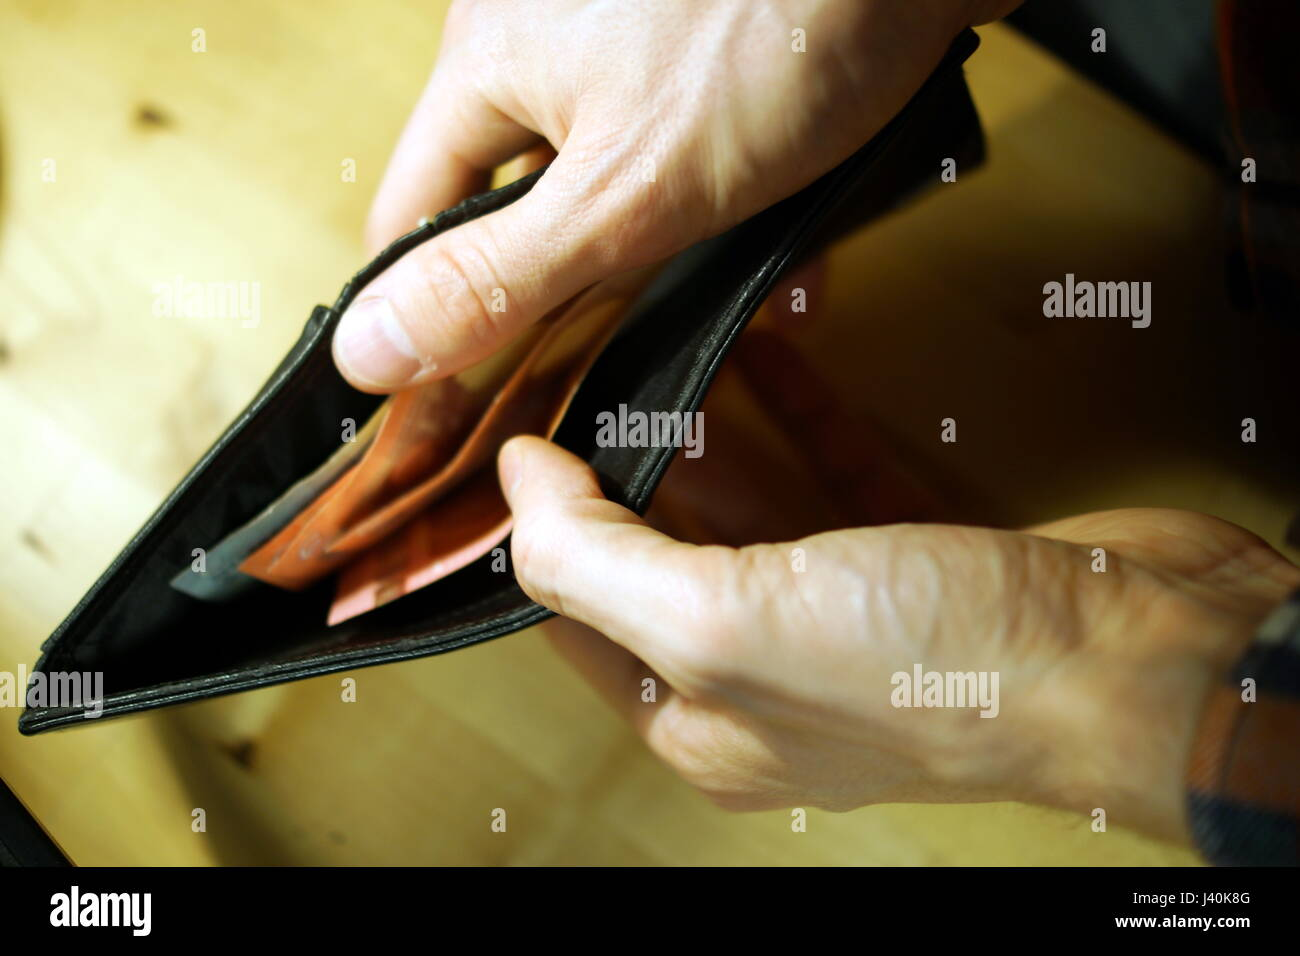 Counting money - Stock Image